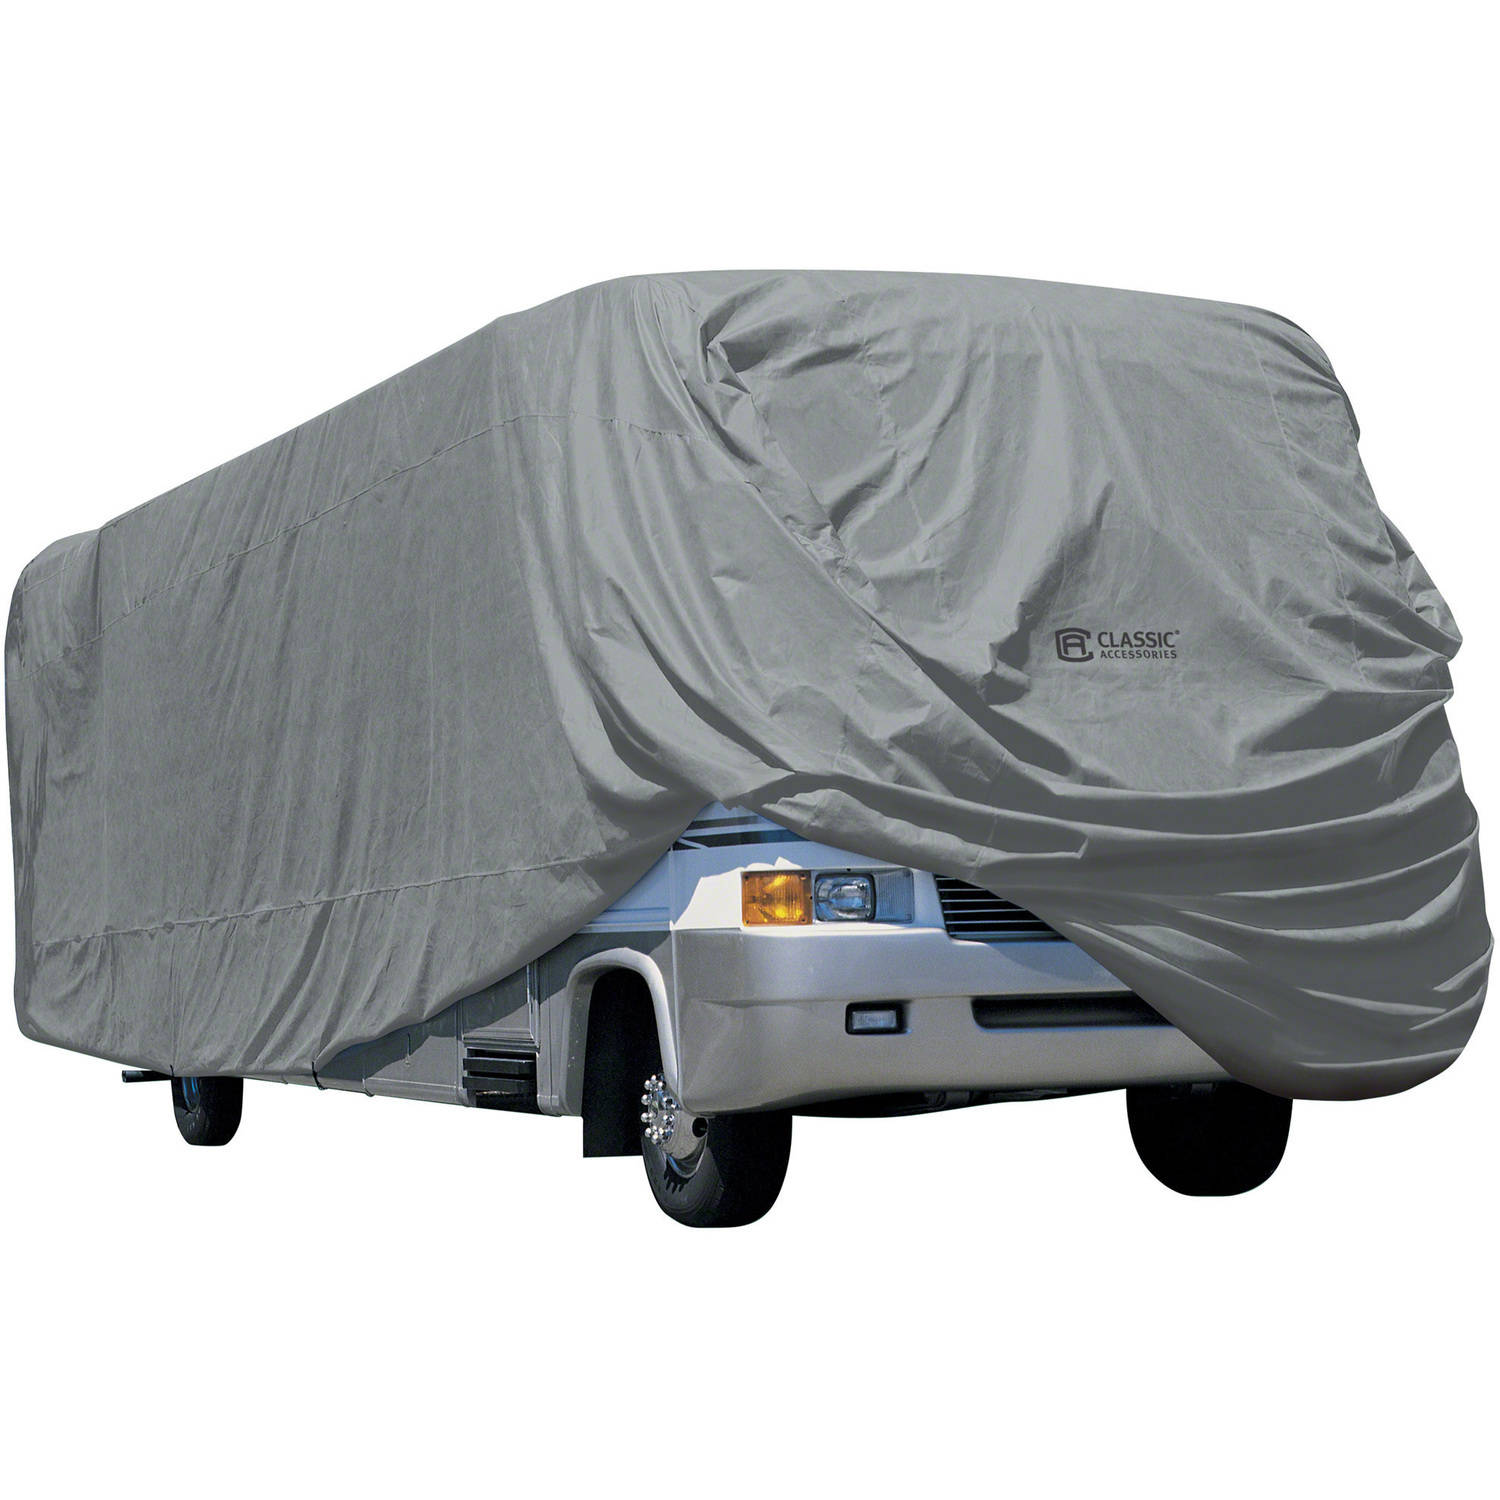 Classic Accessories OverDrive PolyPRO 1 Class A RV Cover, Fits 20' - 40' RVs - Breathable and Water Repellant RV Cover